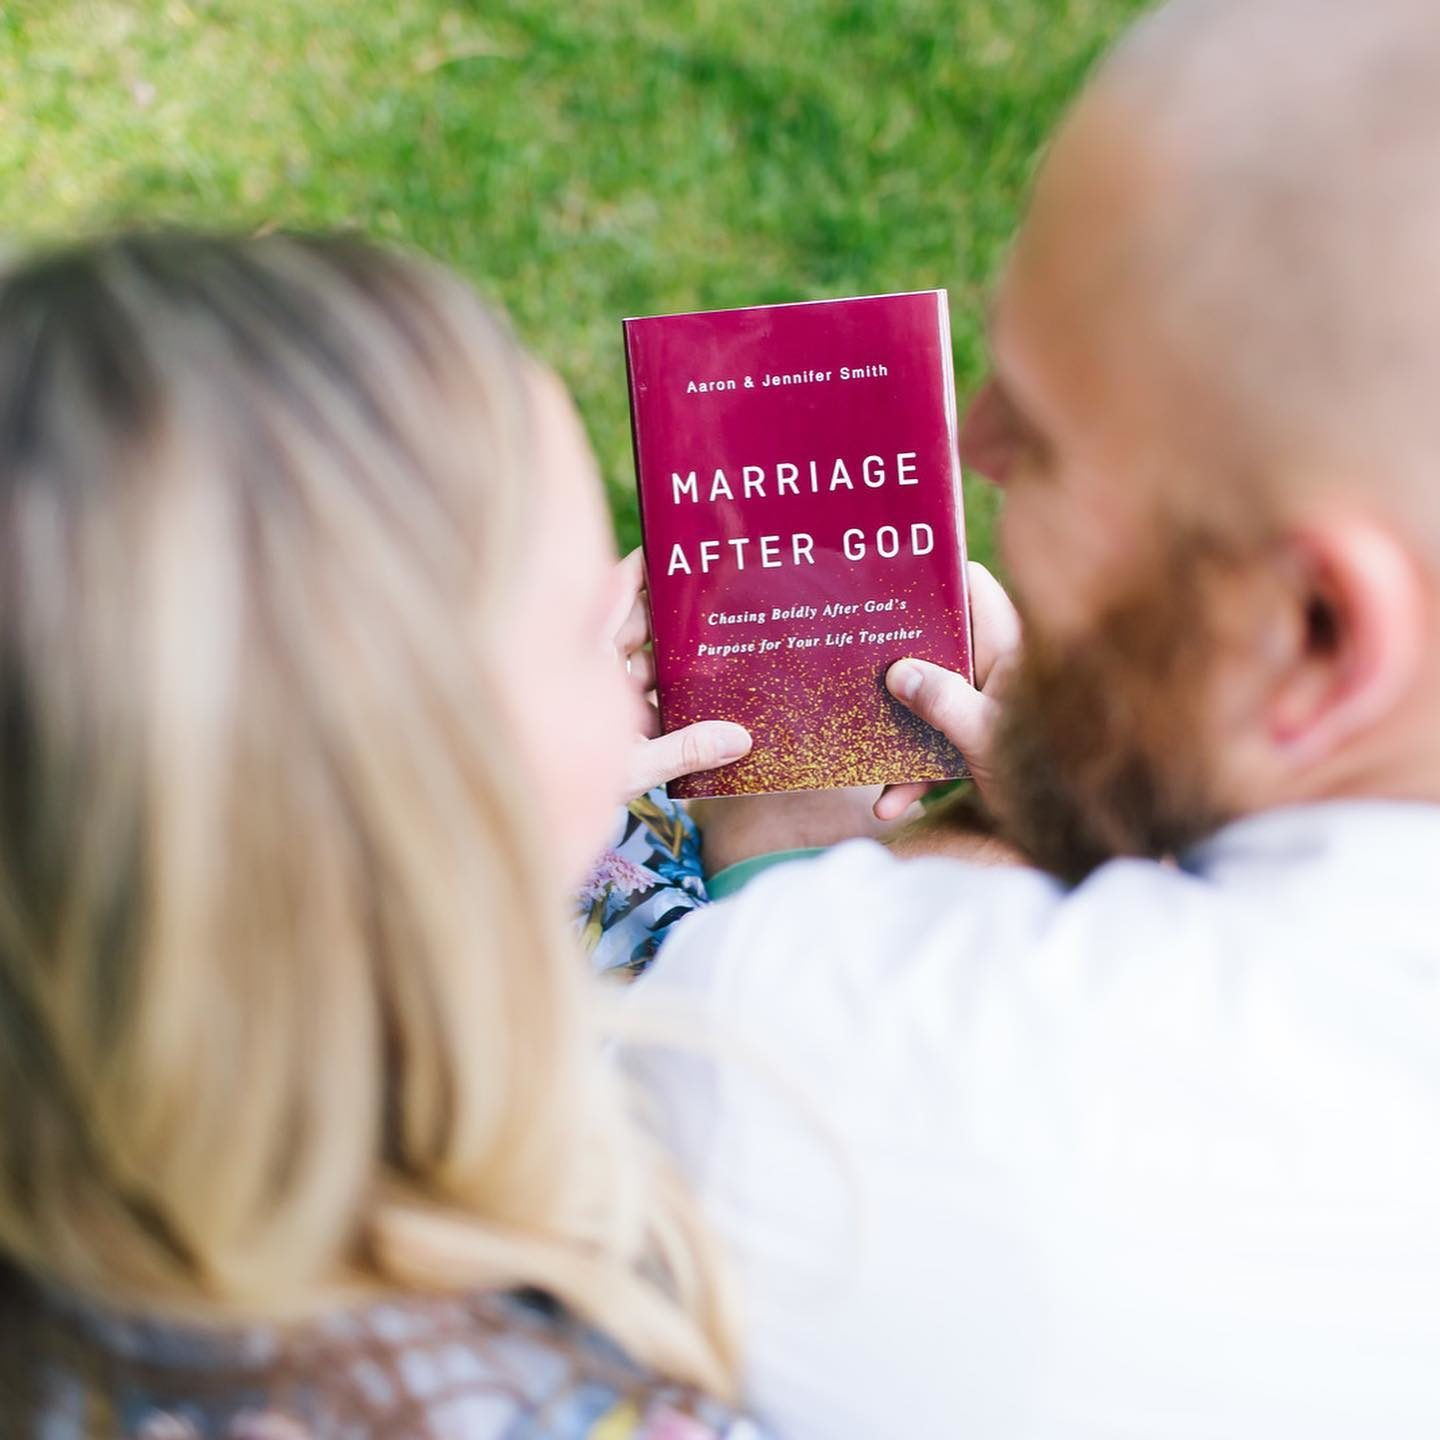 Aaron and Jennifer Smith holding their book Marriage After God.